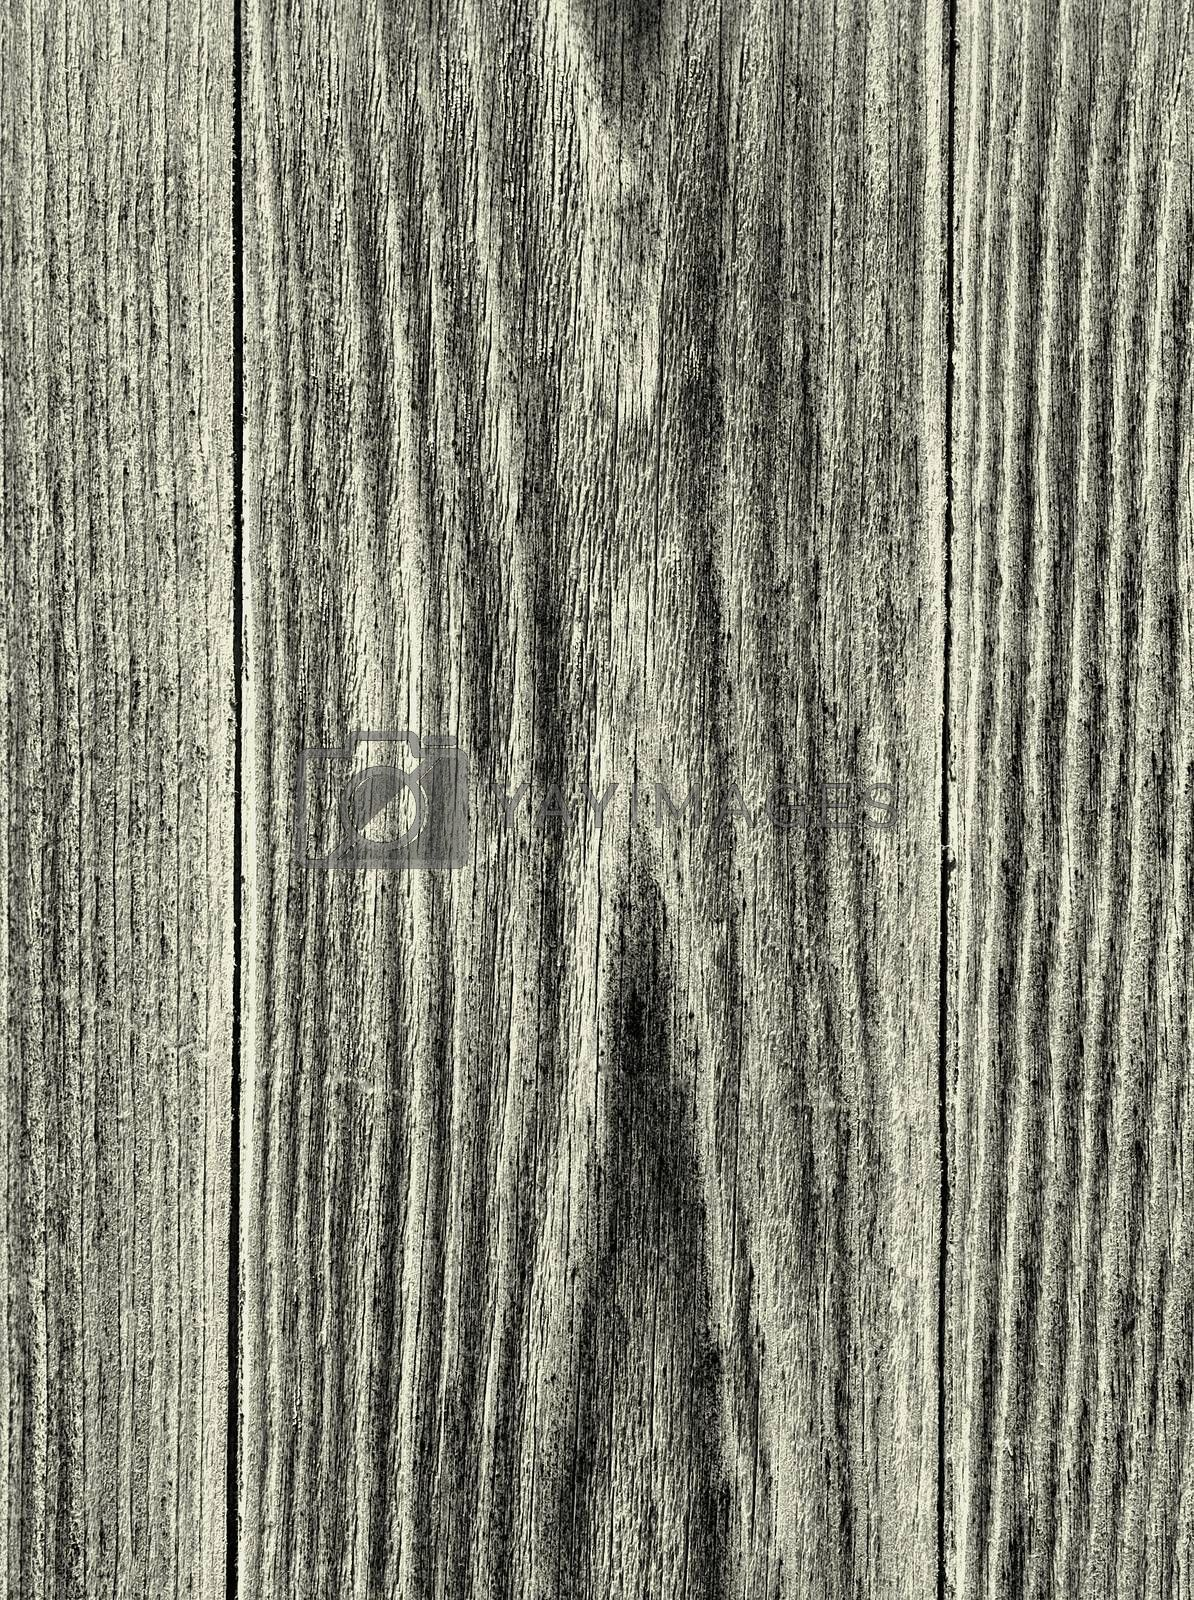 Royalty free image of Rustic Wood Boards Background by zhekos